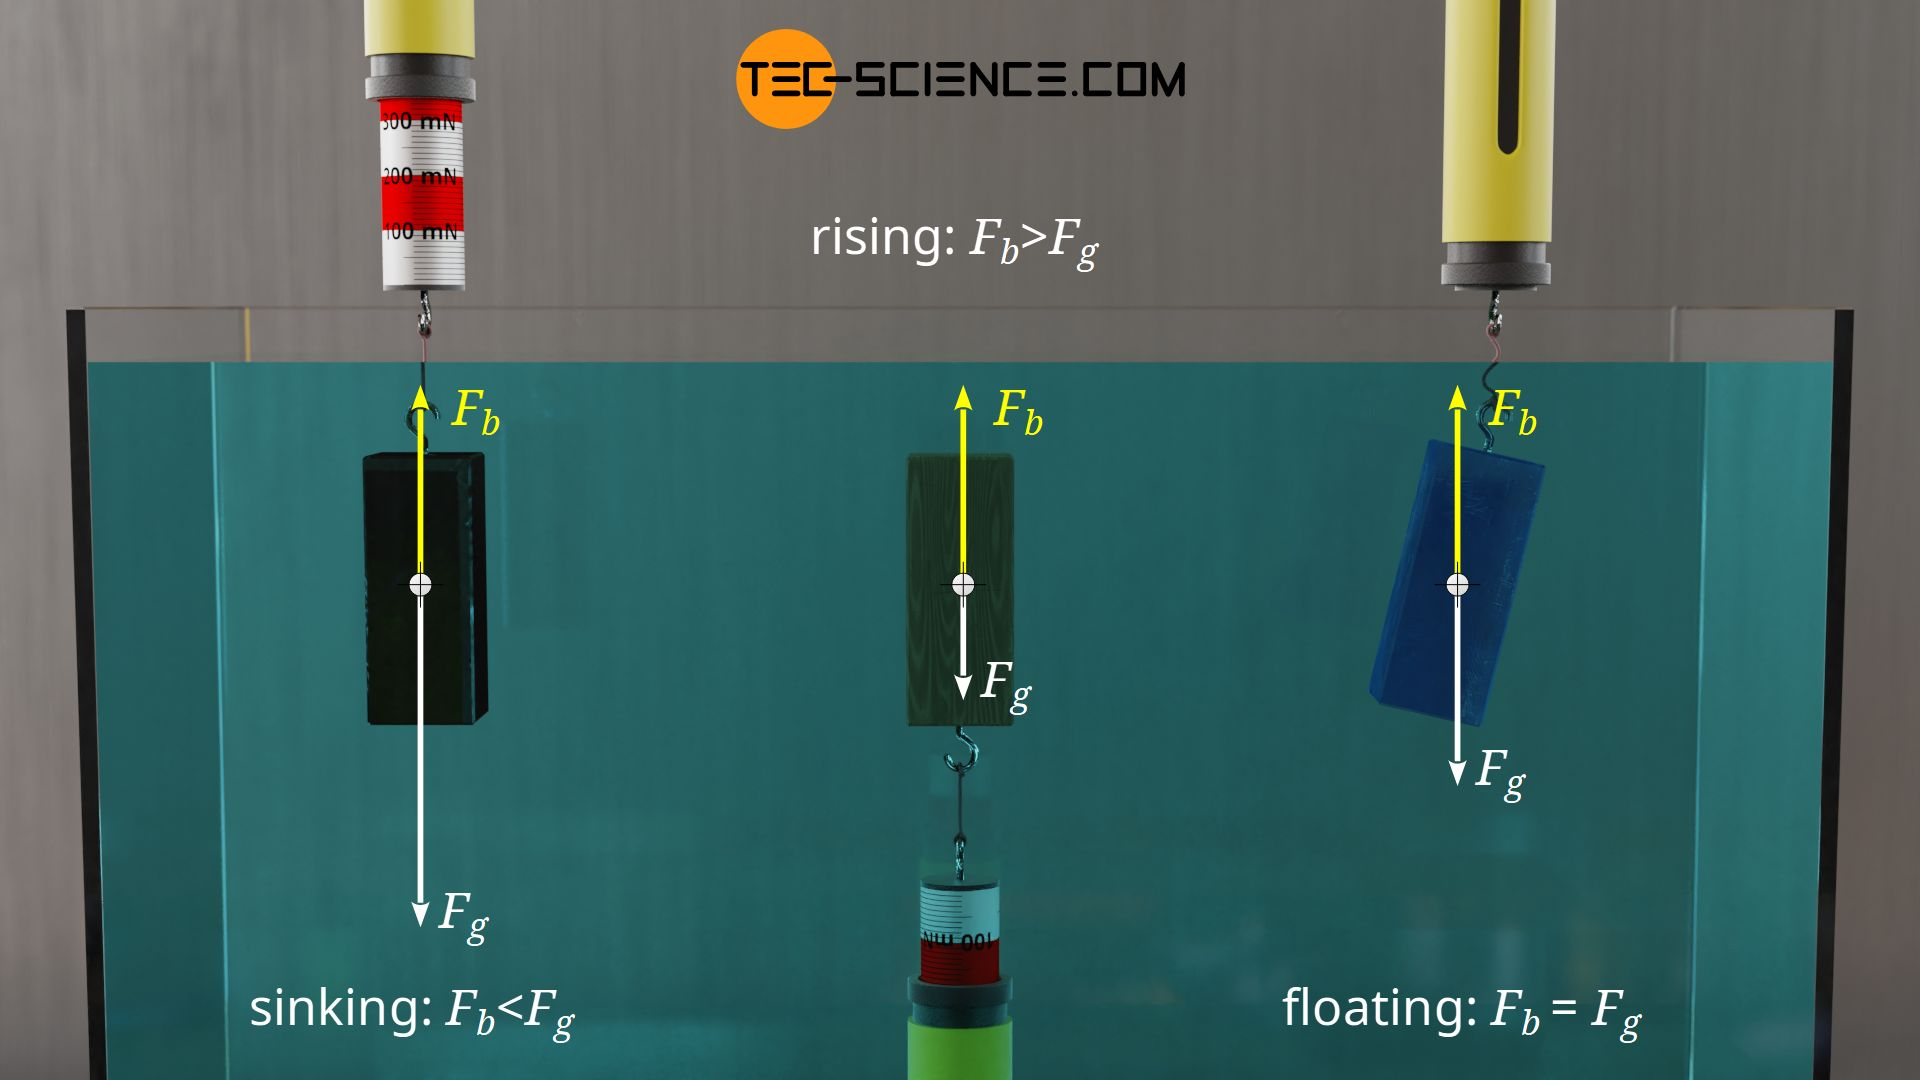 Sinking, rising and floating of objects in liquids